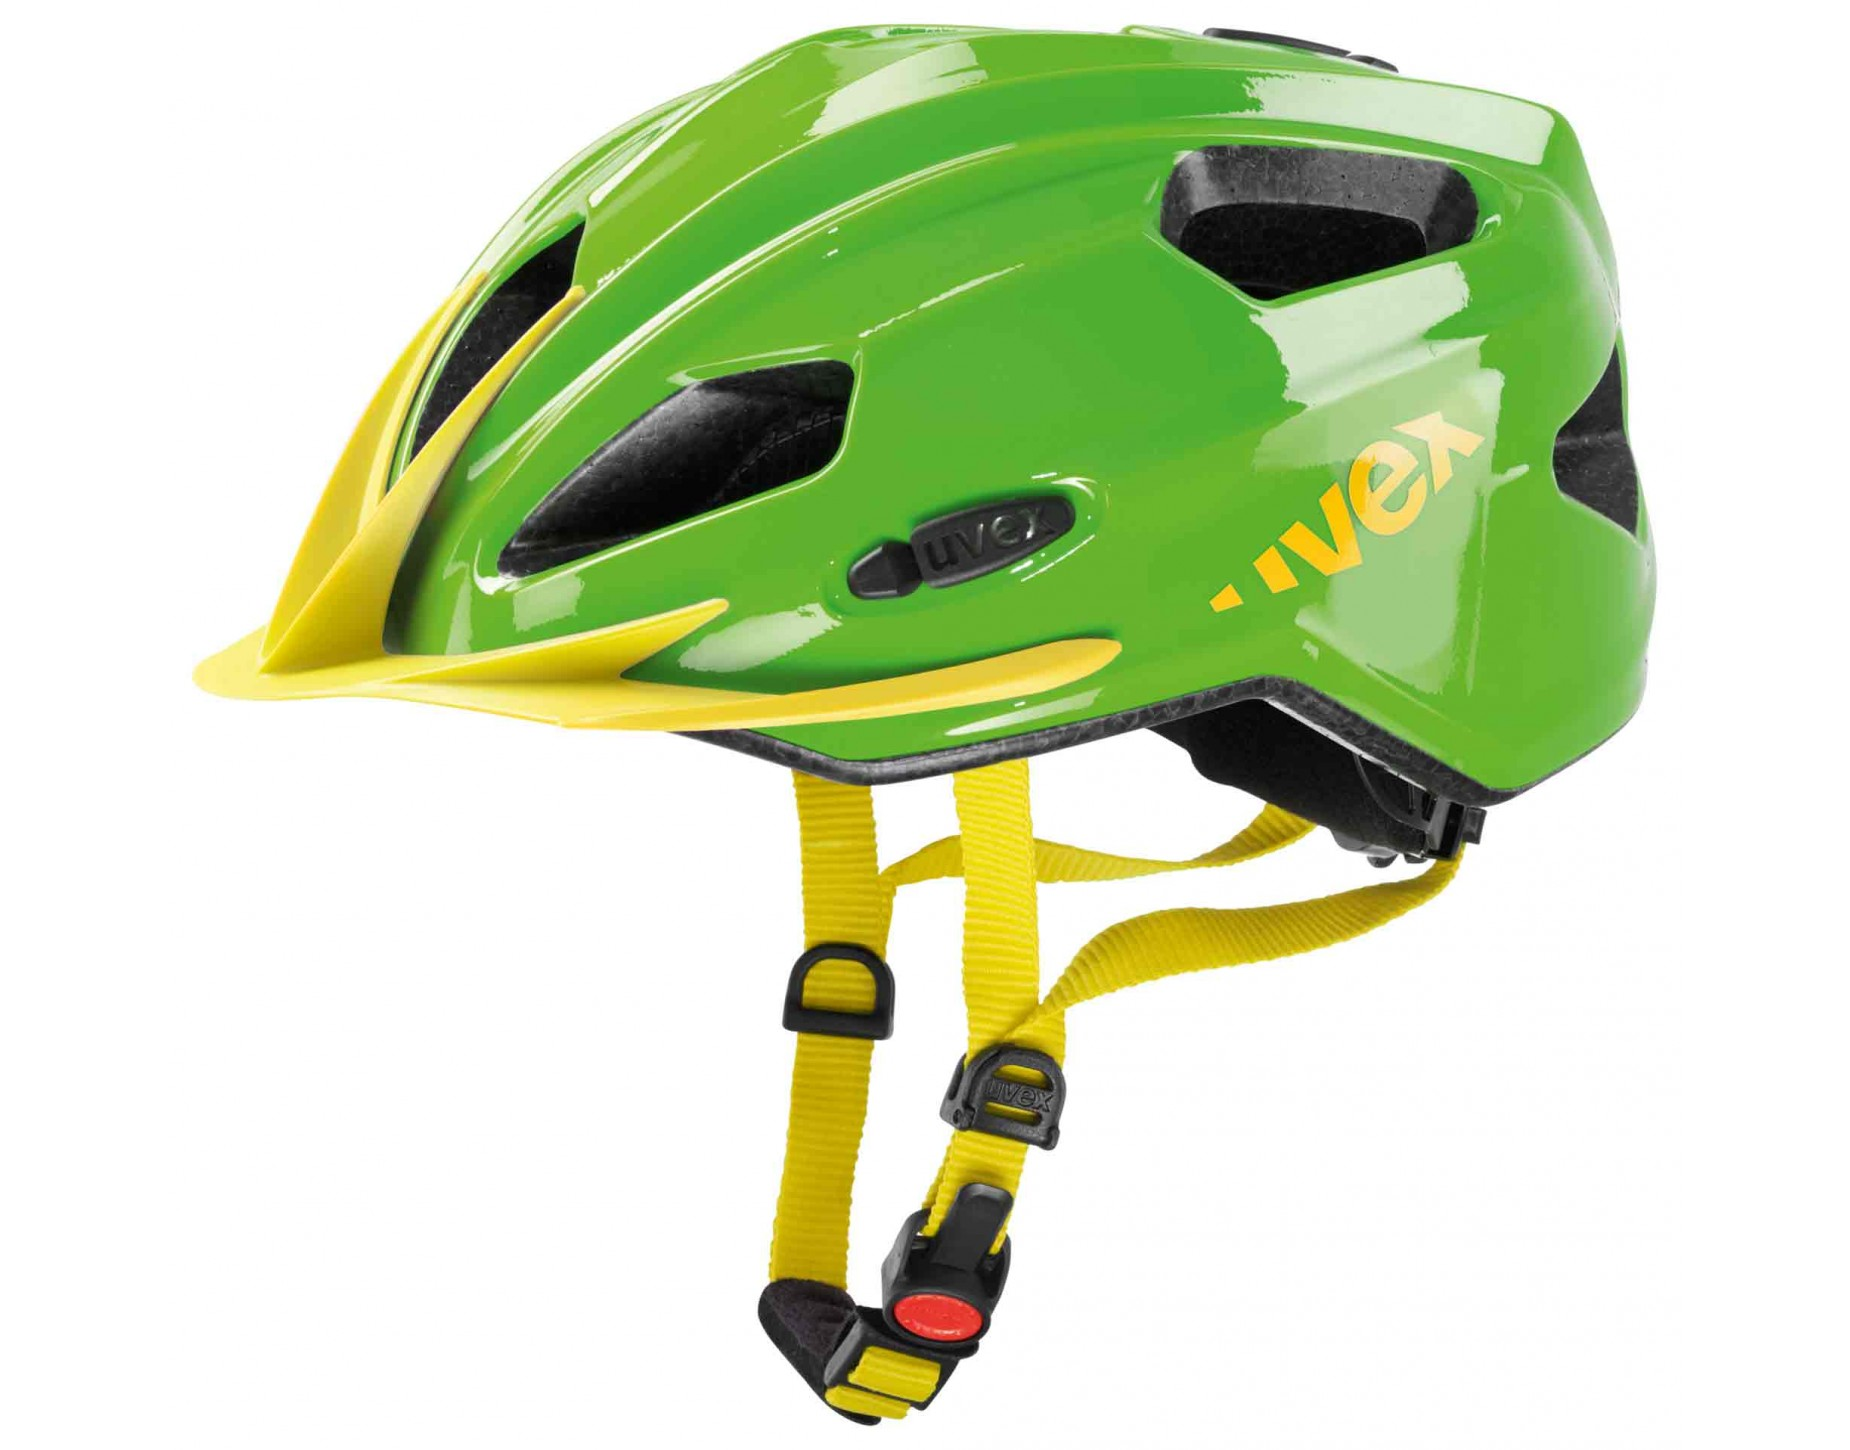 uvex quatro junior kids helmet green yellow